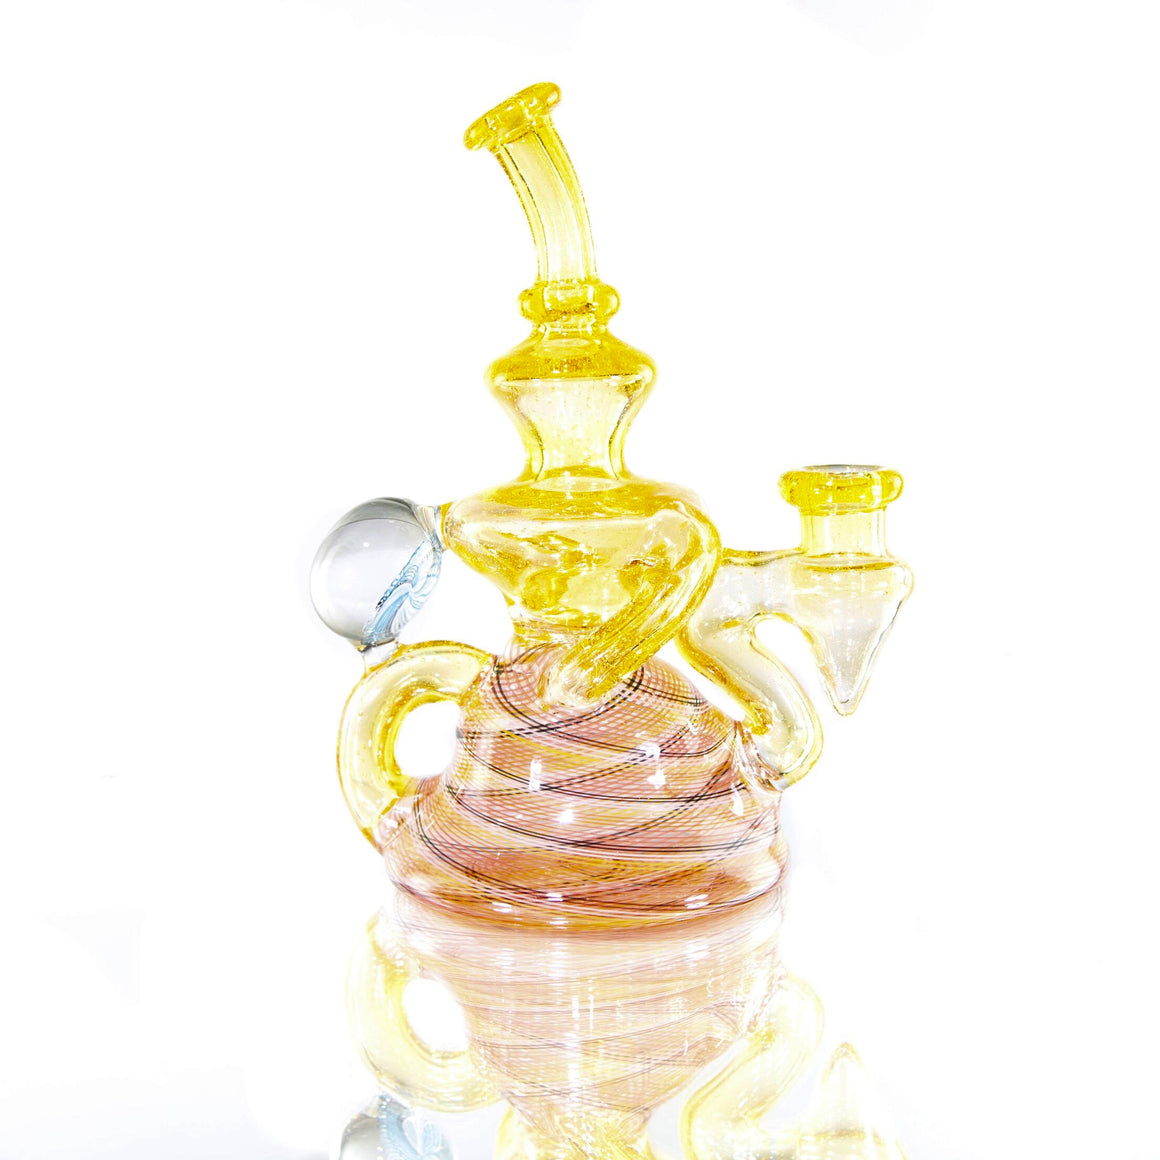 Fully-worked Klein Recycler - Citrus/Orange Reti - 14mm Female